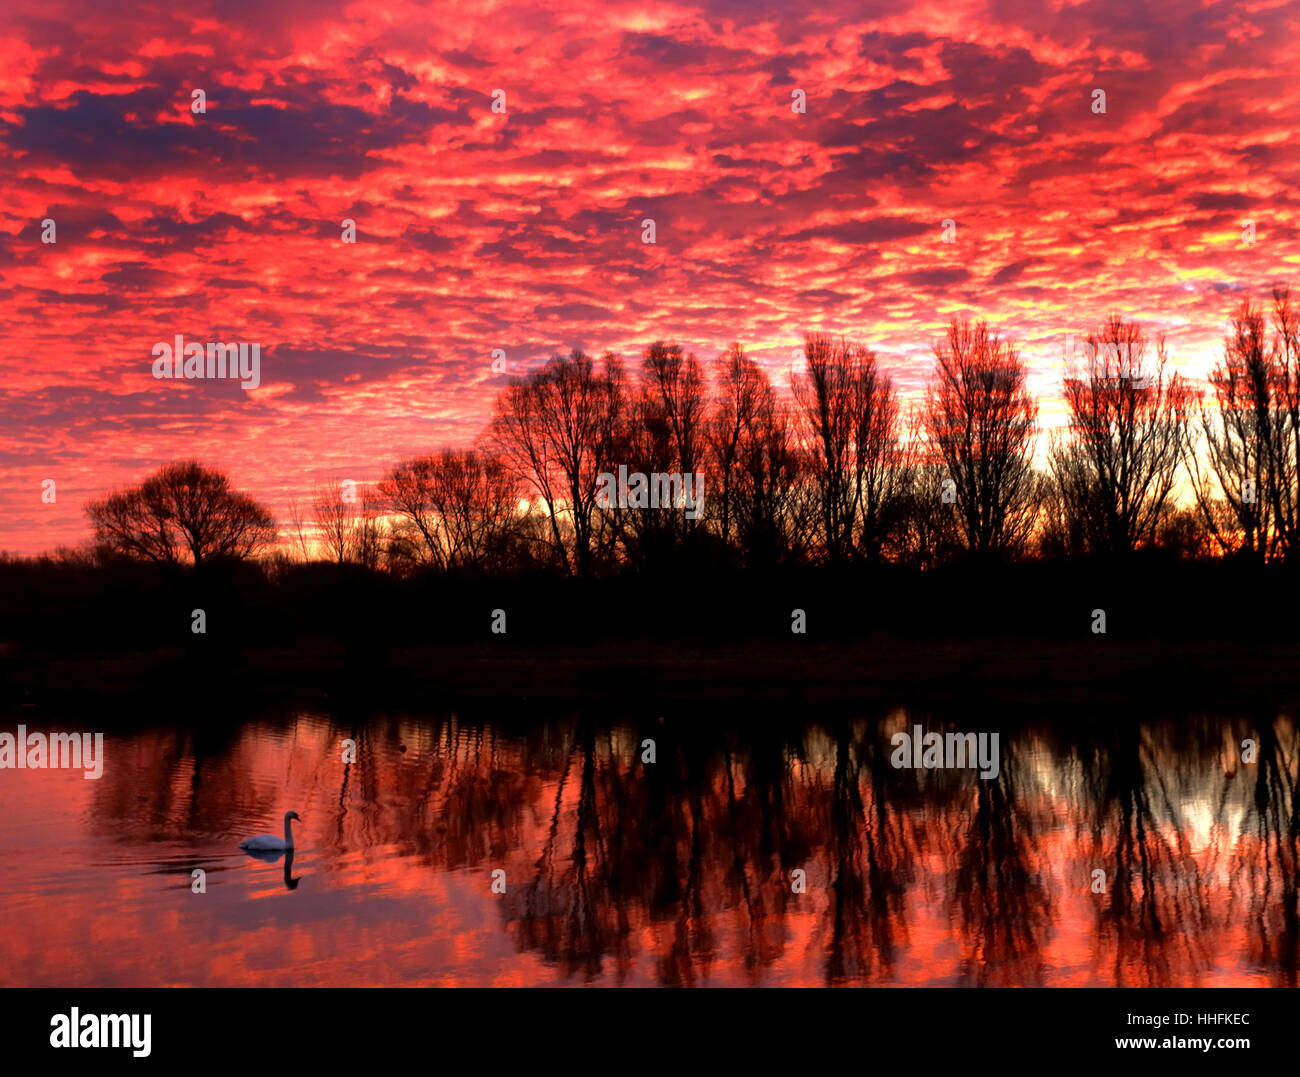 Peterborough, UK. 18th January 2017. The sky looked on fire this morning, as it made the clouds glow red, just before - Stock Image